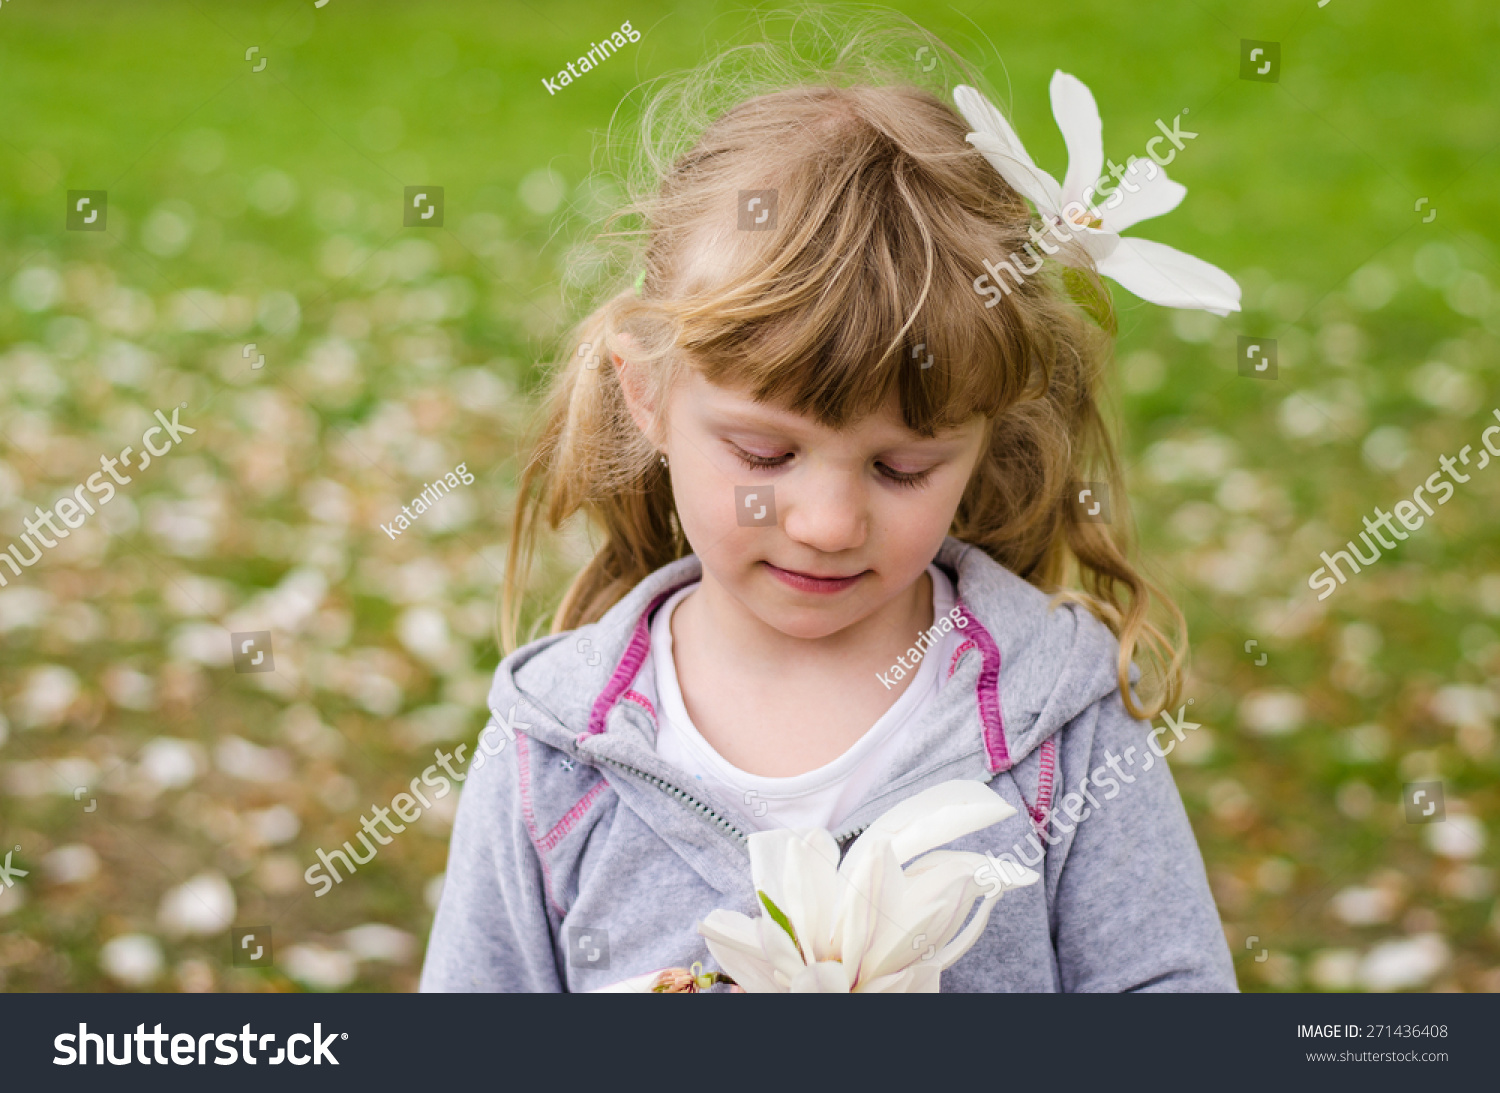 Beautiful Blond Girl With White Flower In Hair Ez Canvas